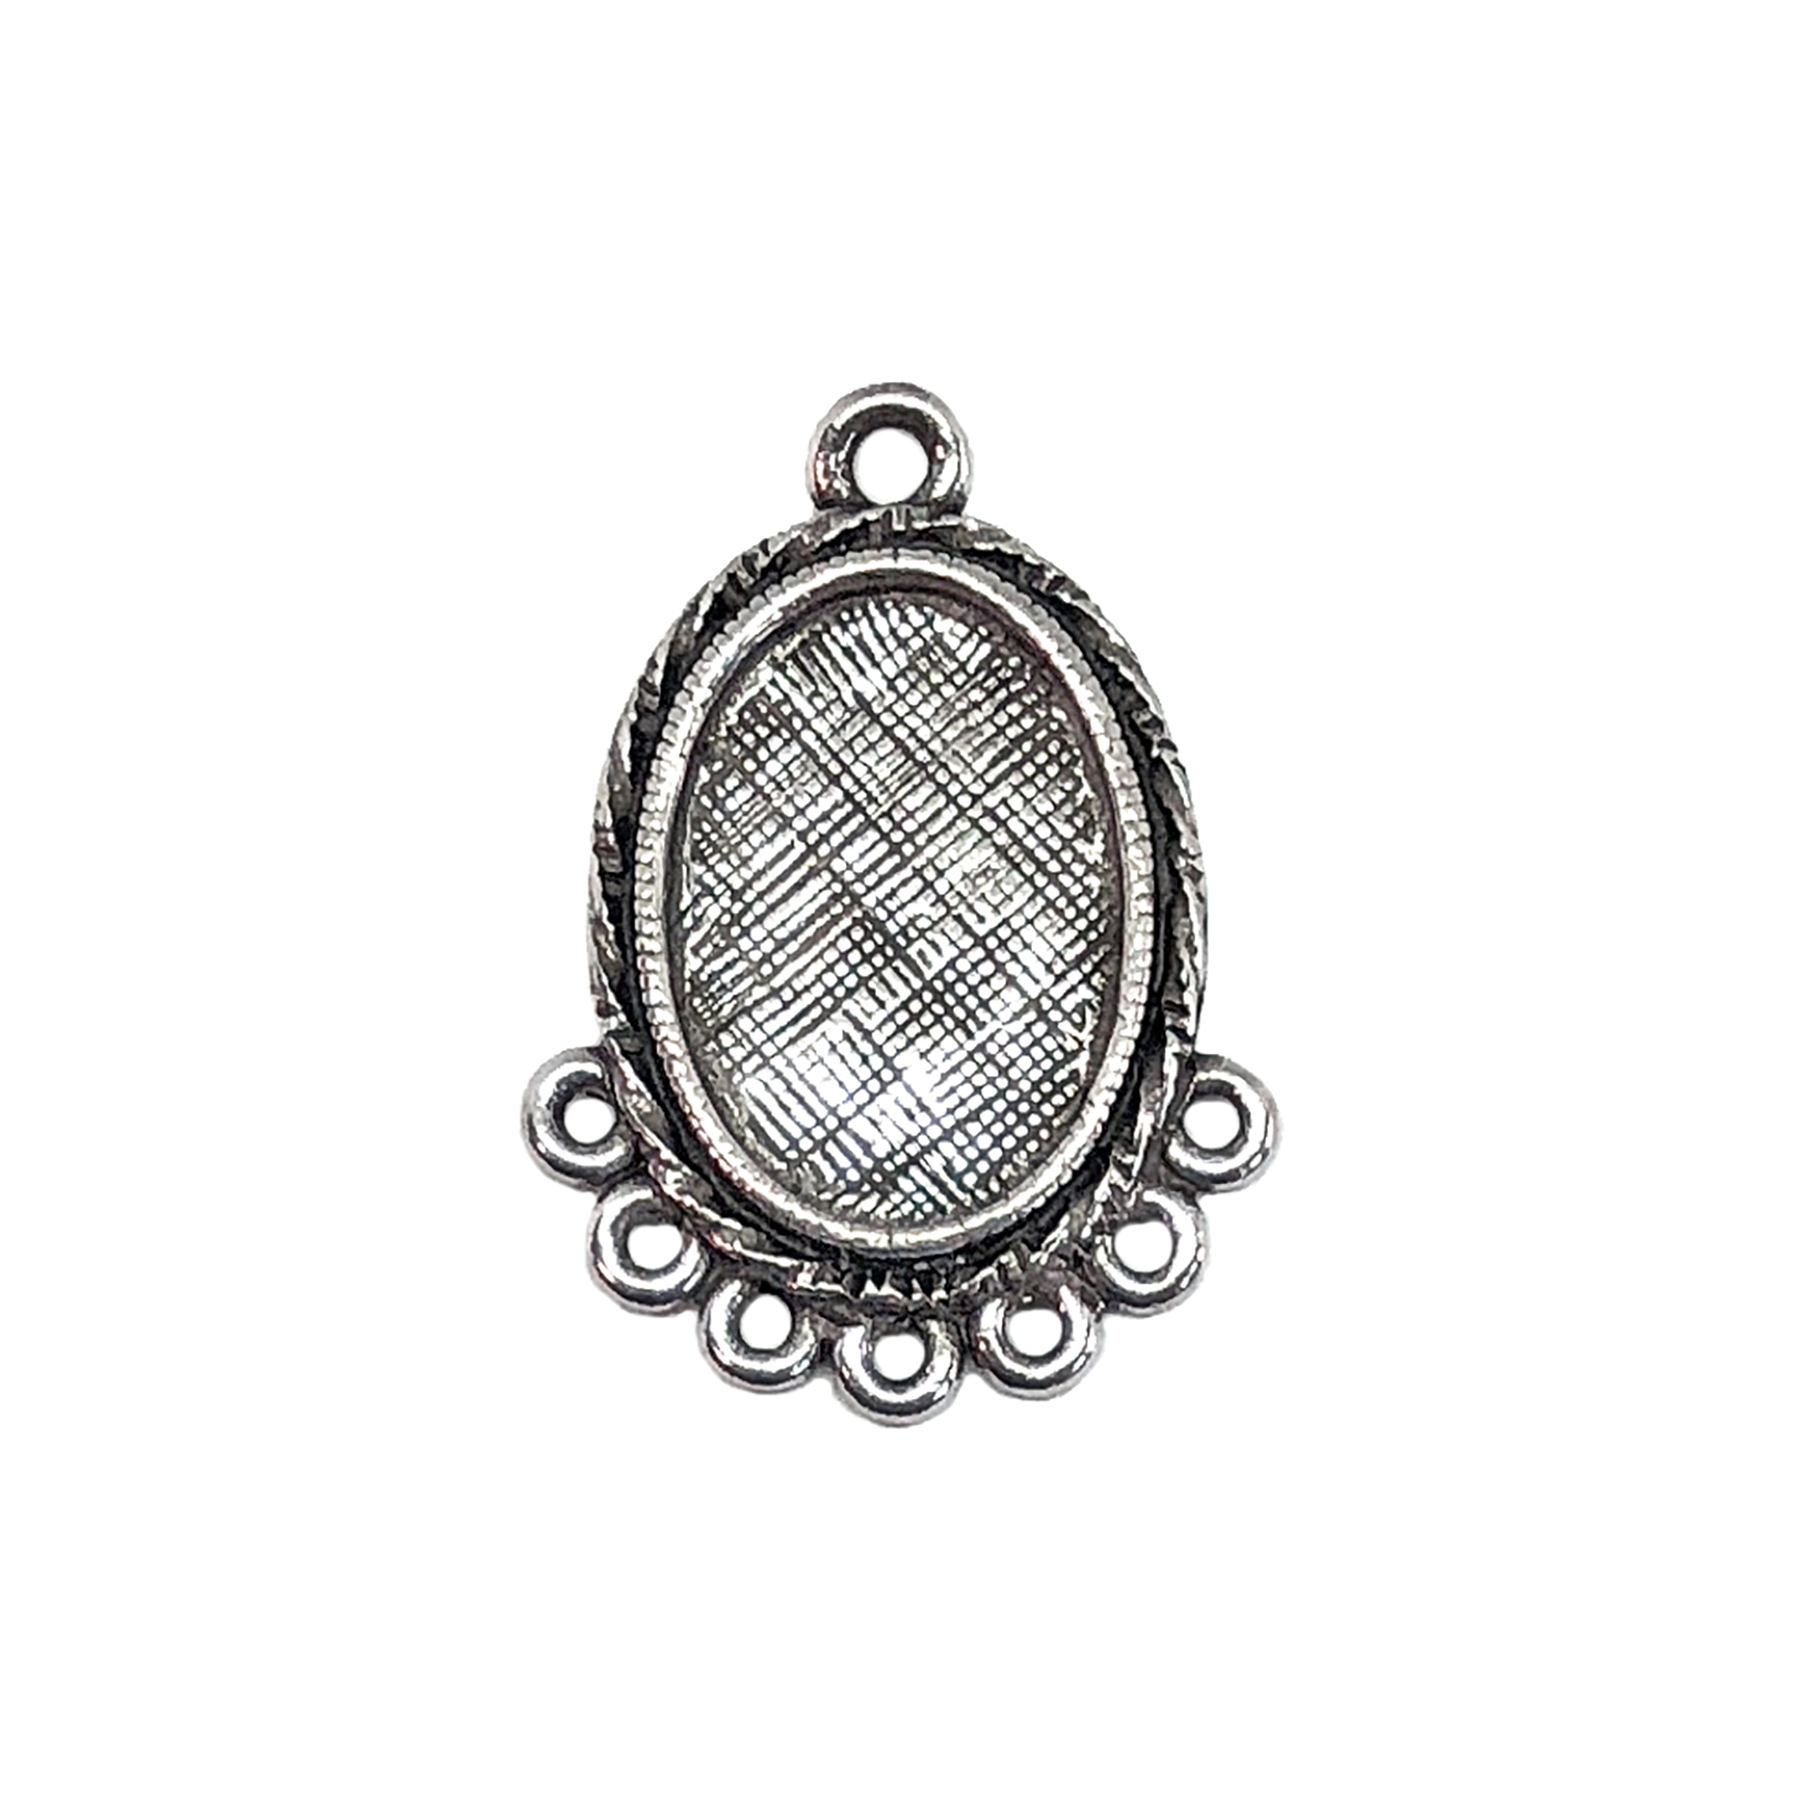 oval drop pendant, old silver pewter, Victorian pendant, lead free pewter, B'sue by 1928, antique silver, vintage jewelry parts, nickel free, us made, 1928 Company, designer jewelry, B'sue Boutiques, gypsy style pendant, 13x10mm mount, 05684